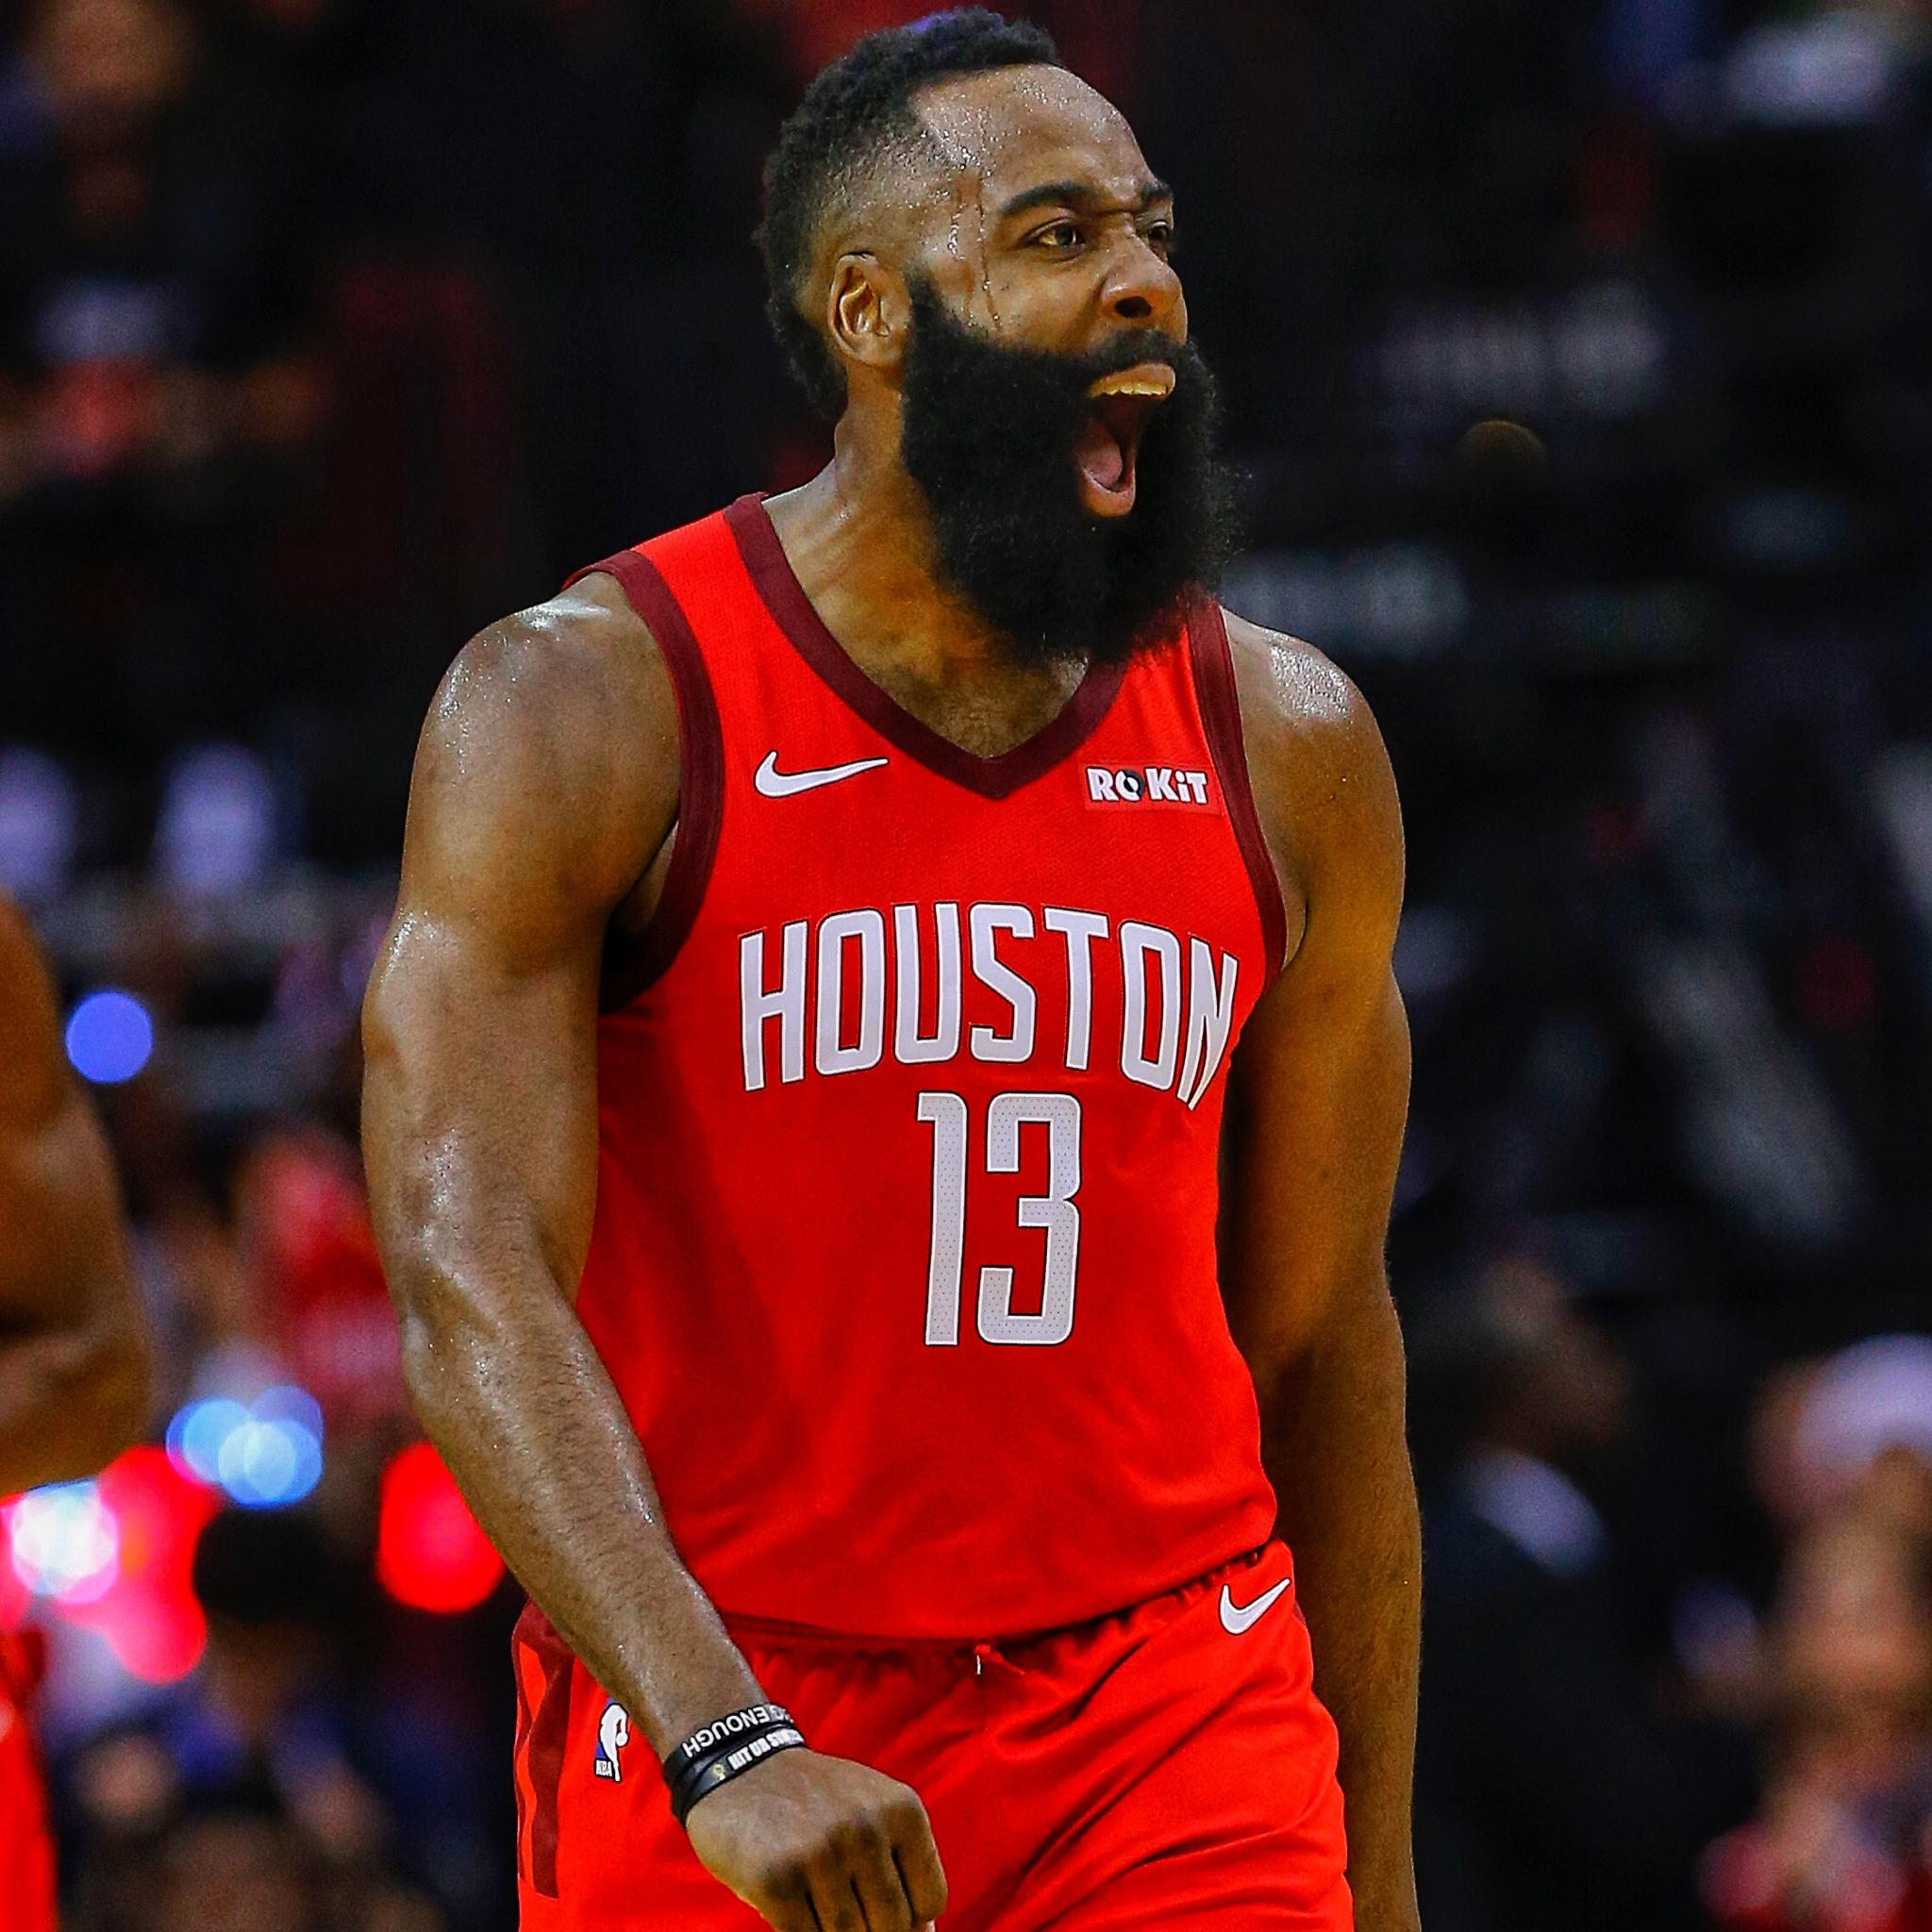 James Harden Nba Records: James Harden Sets NBA Record After Feat Against All 29